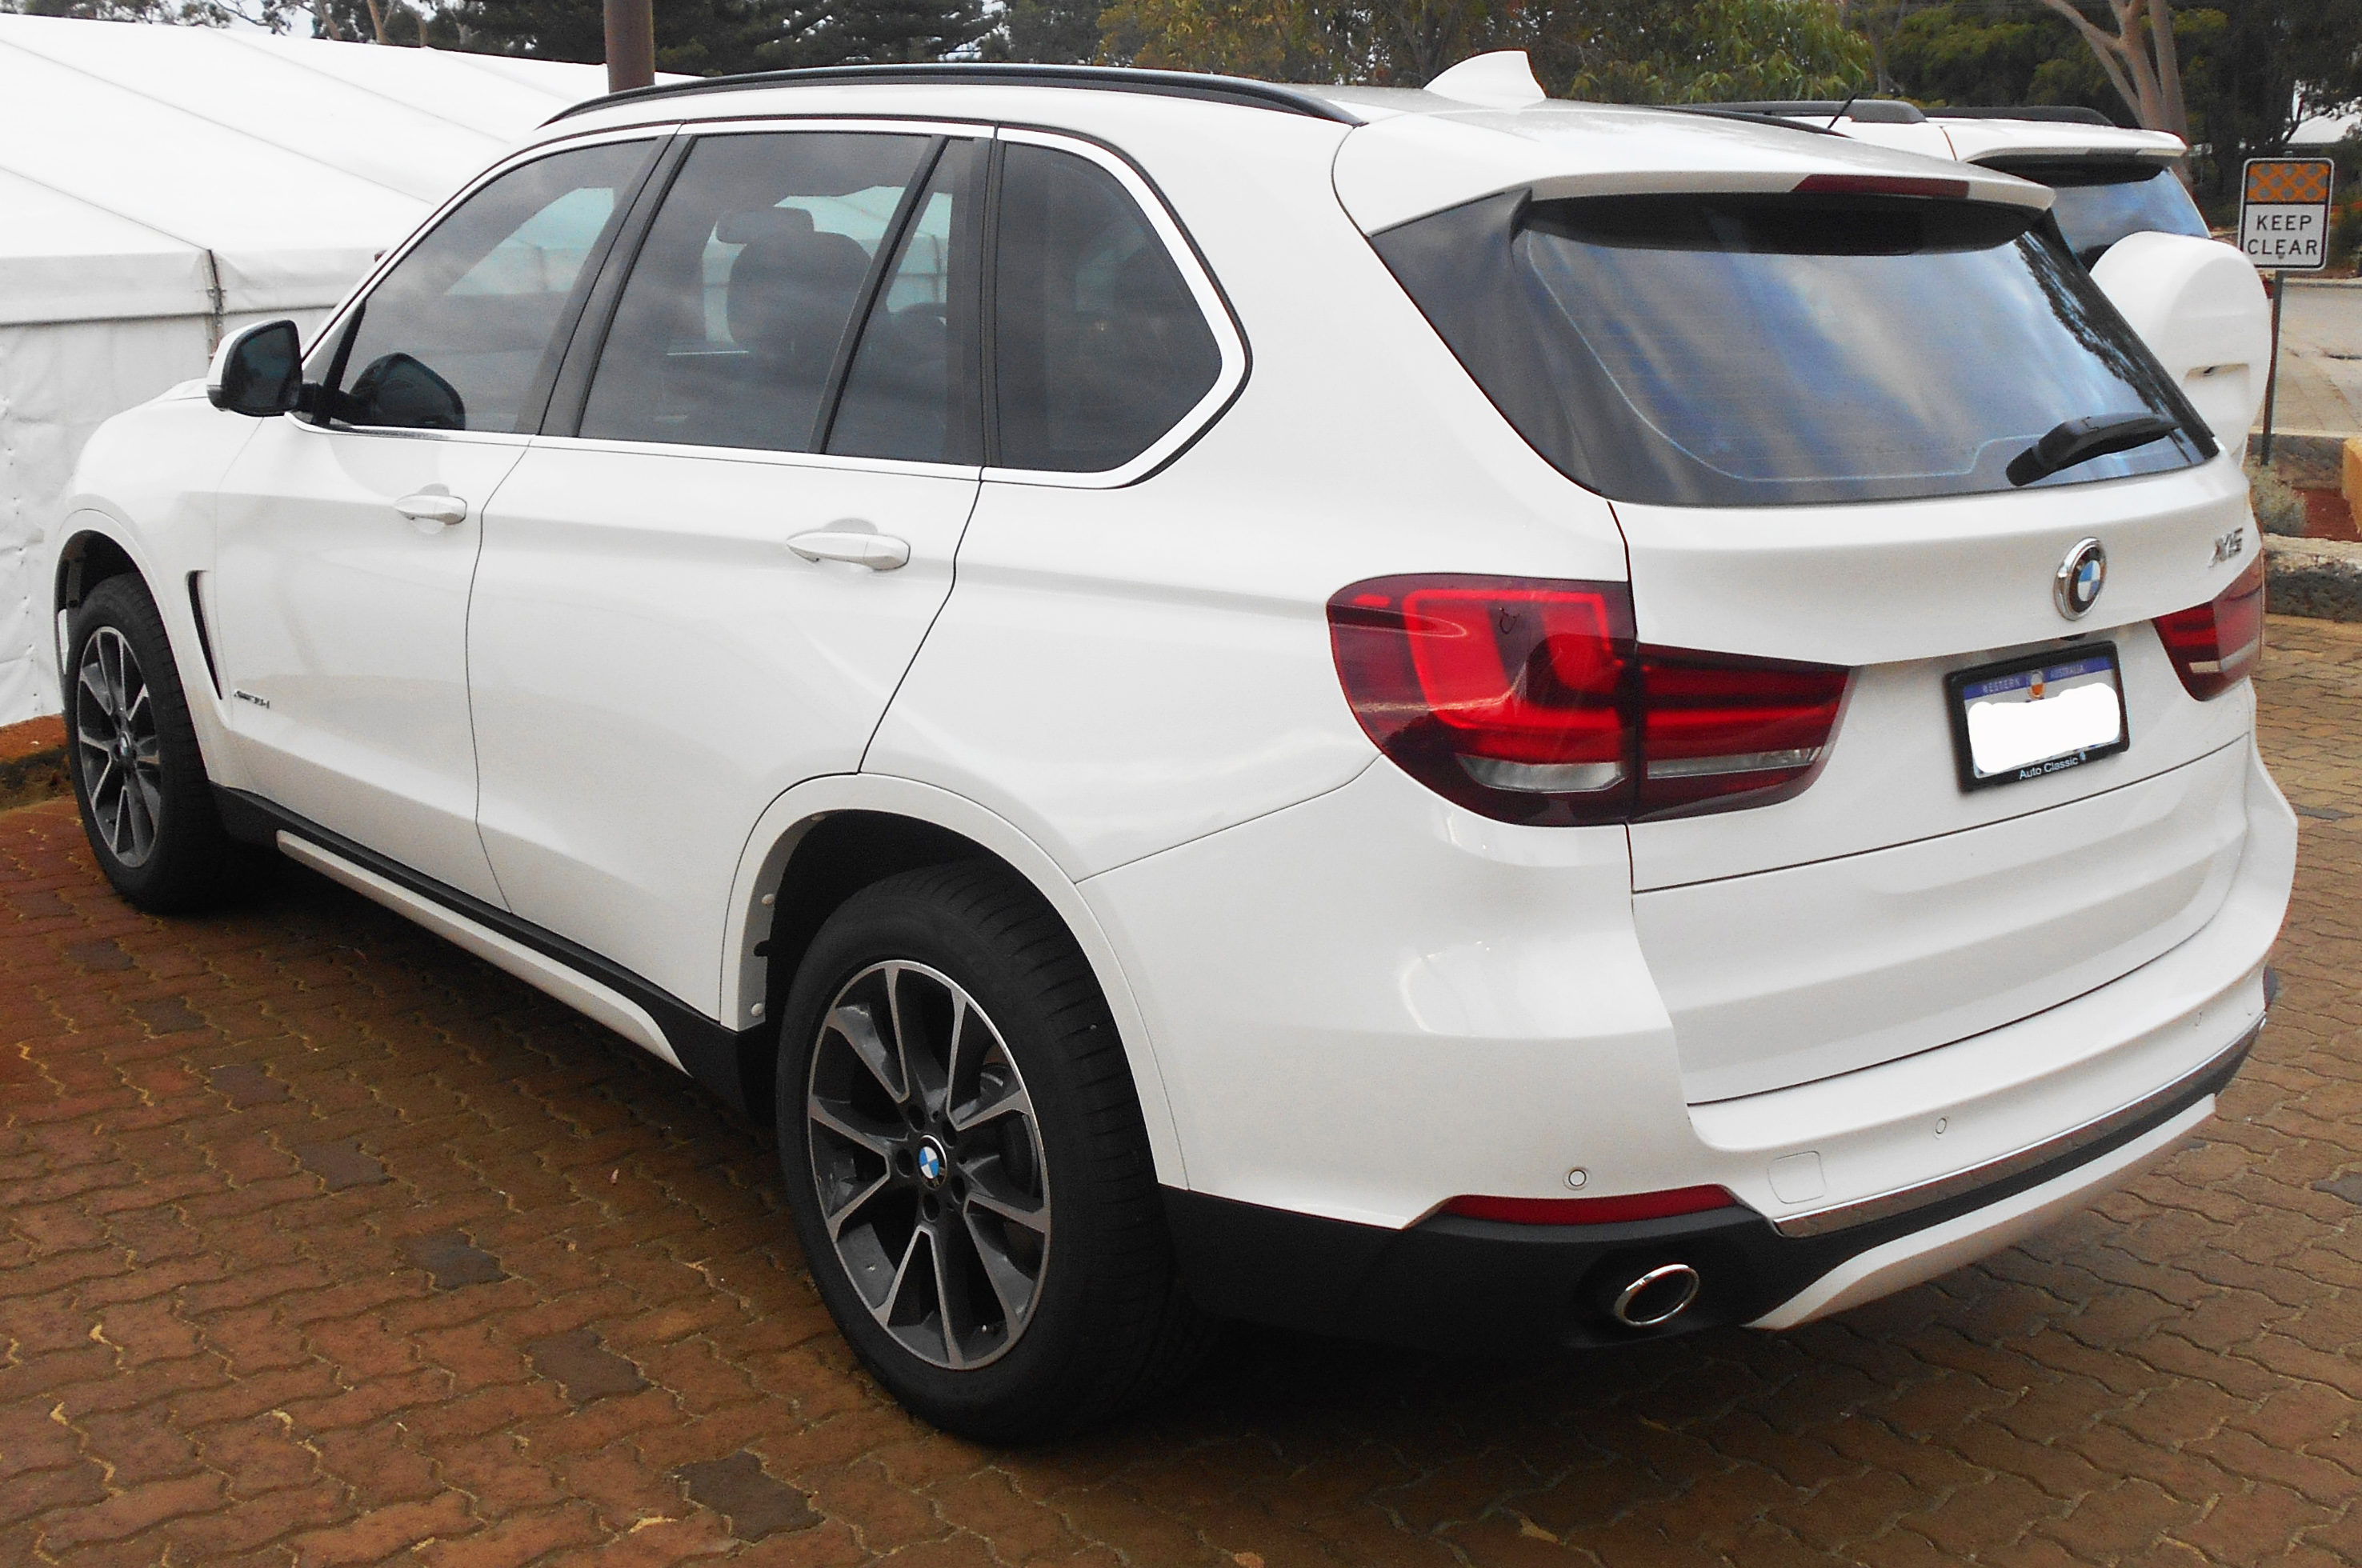 file 2014 bmw x5 f15 xdrive30d wagon 2015 03 14 jpg wikimedia commons. Black Bedroom Furniture Sets. Home Design Ideas